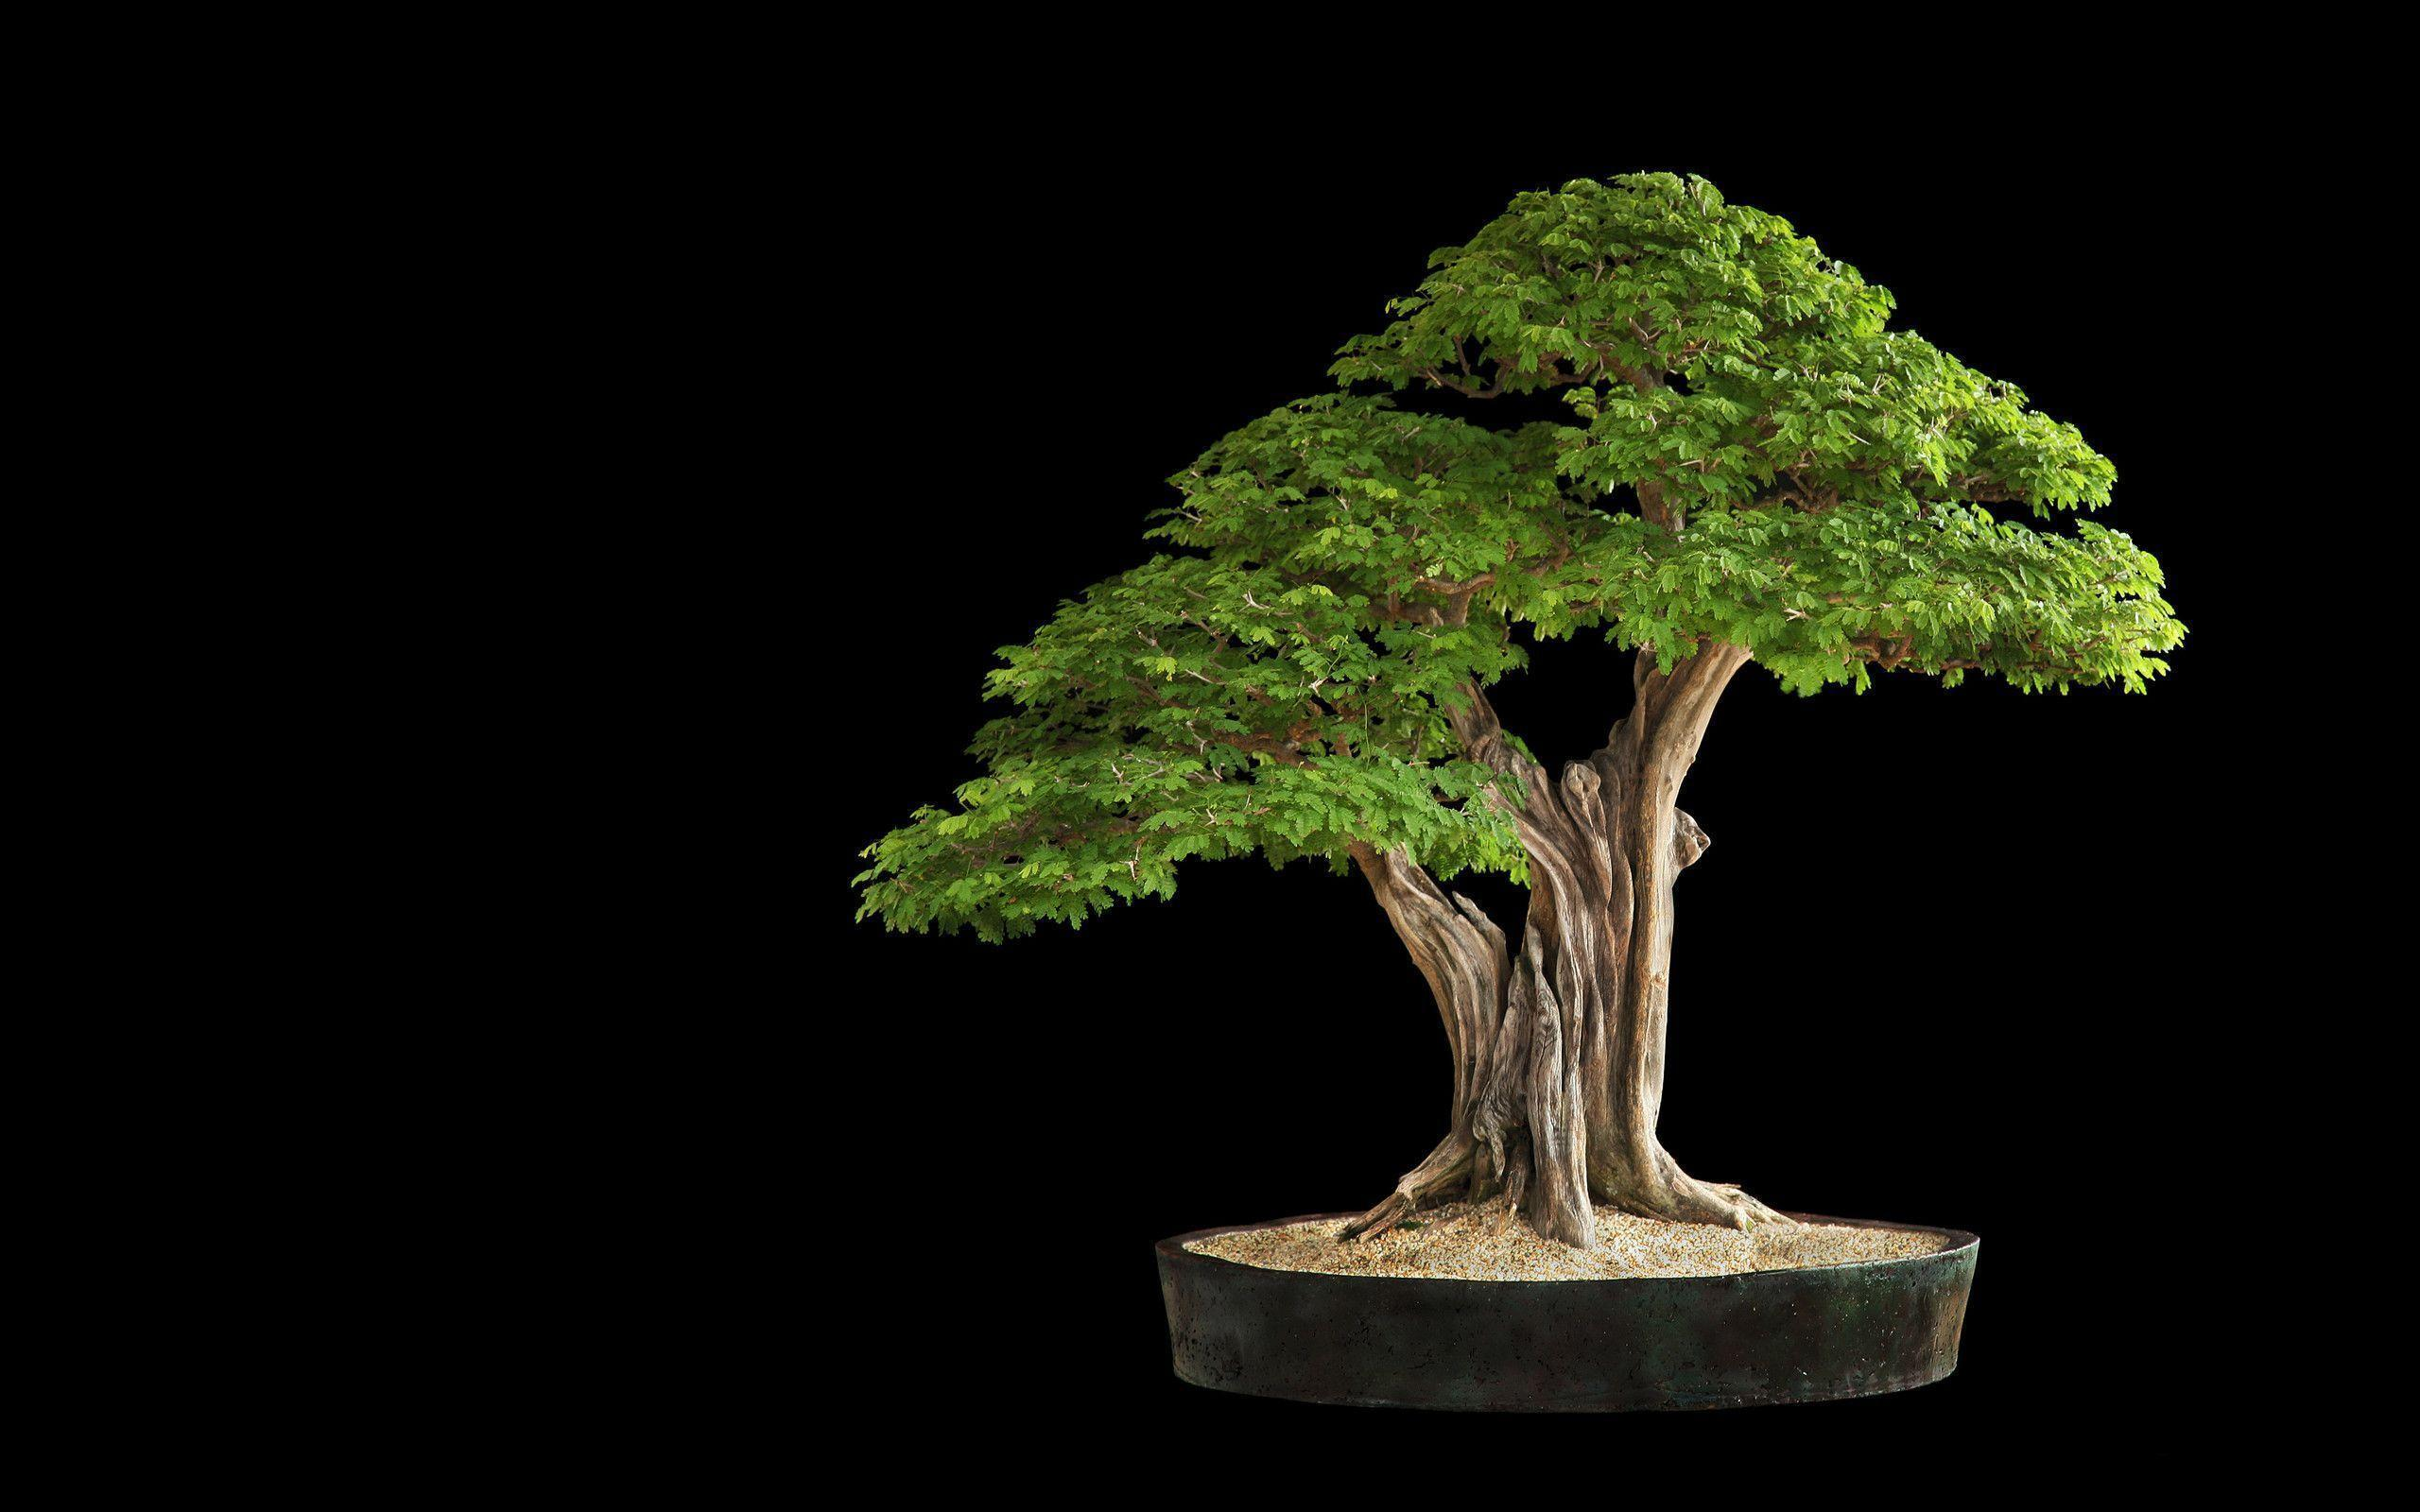 Tree Bonsai Tree leaves h wallpaper | 2560x1600 | 67912 | WallpaperUP